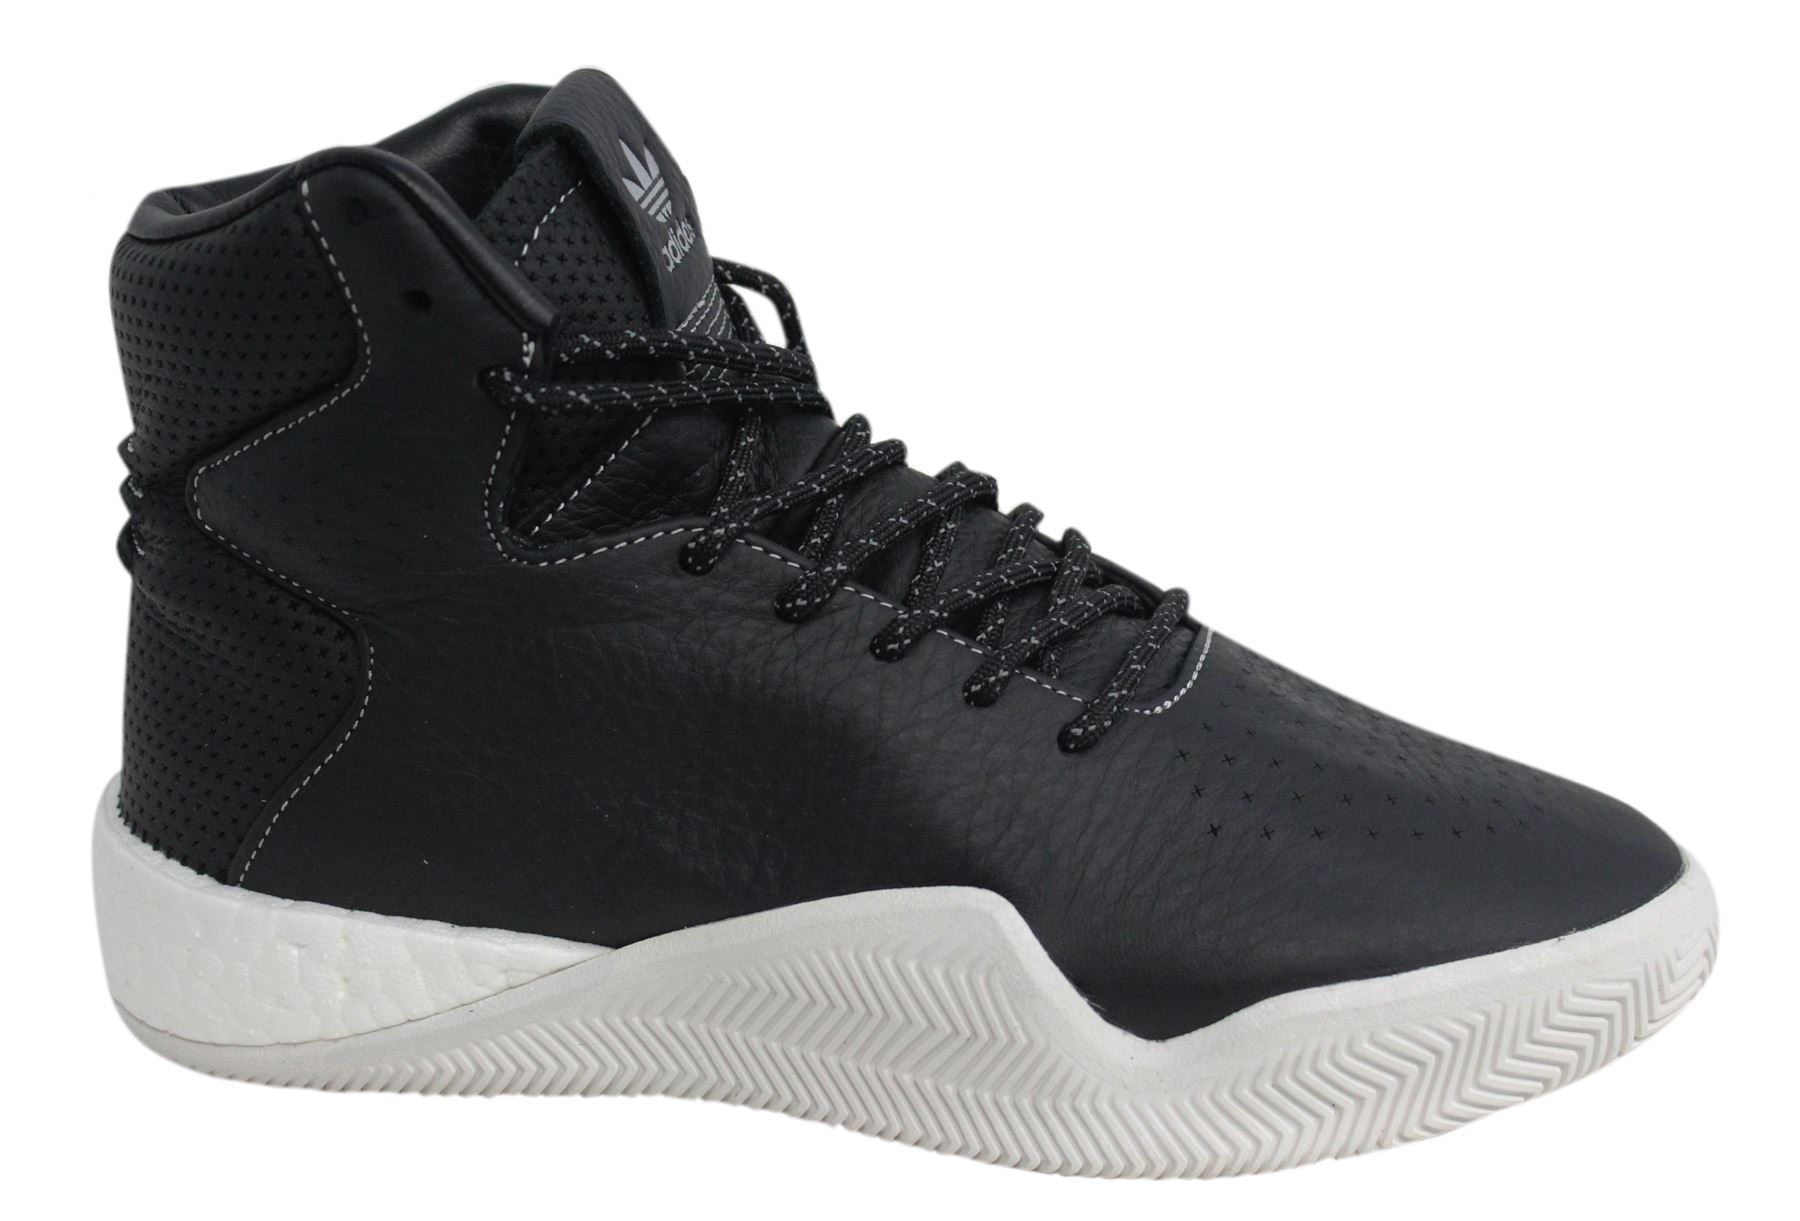 buy popular c8362 1fed8 Adidas Tubular Instinct Boost Lace Up Hi Black Leather Mens Trainers BB8401  M16